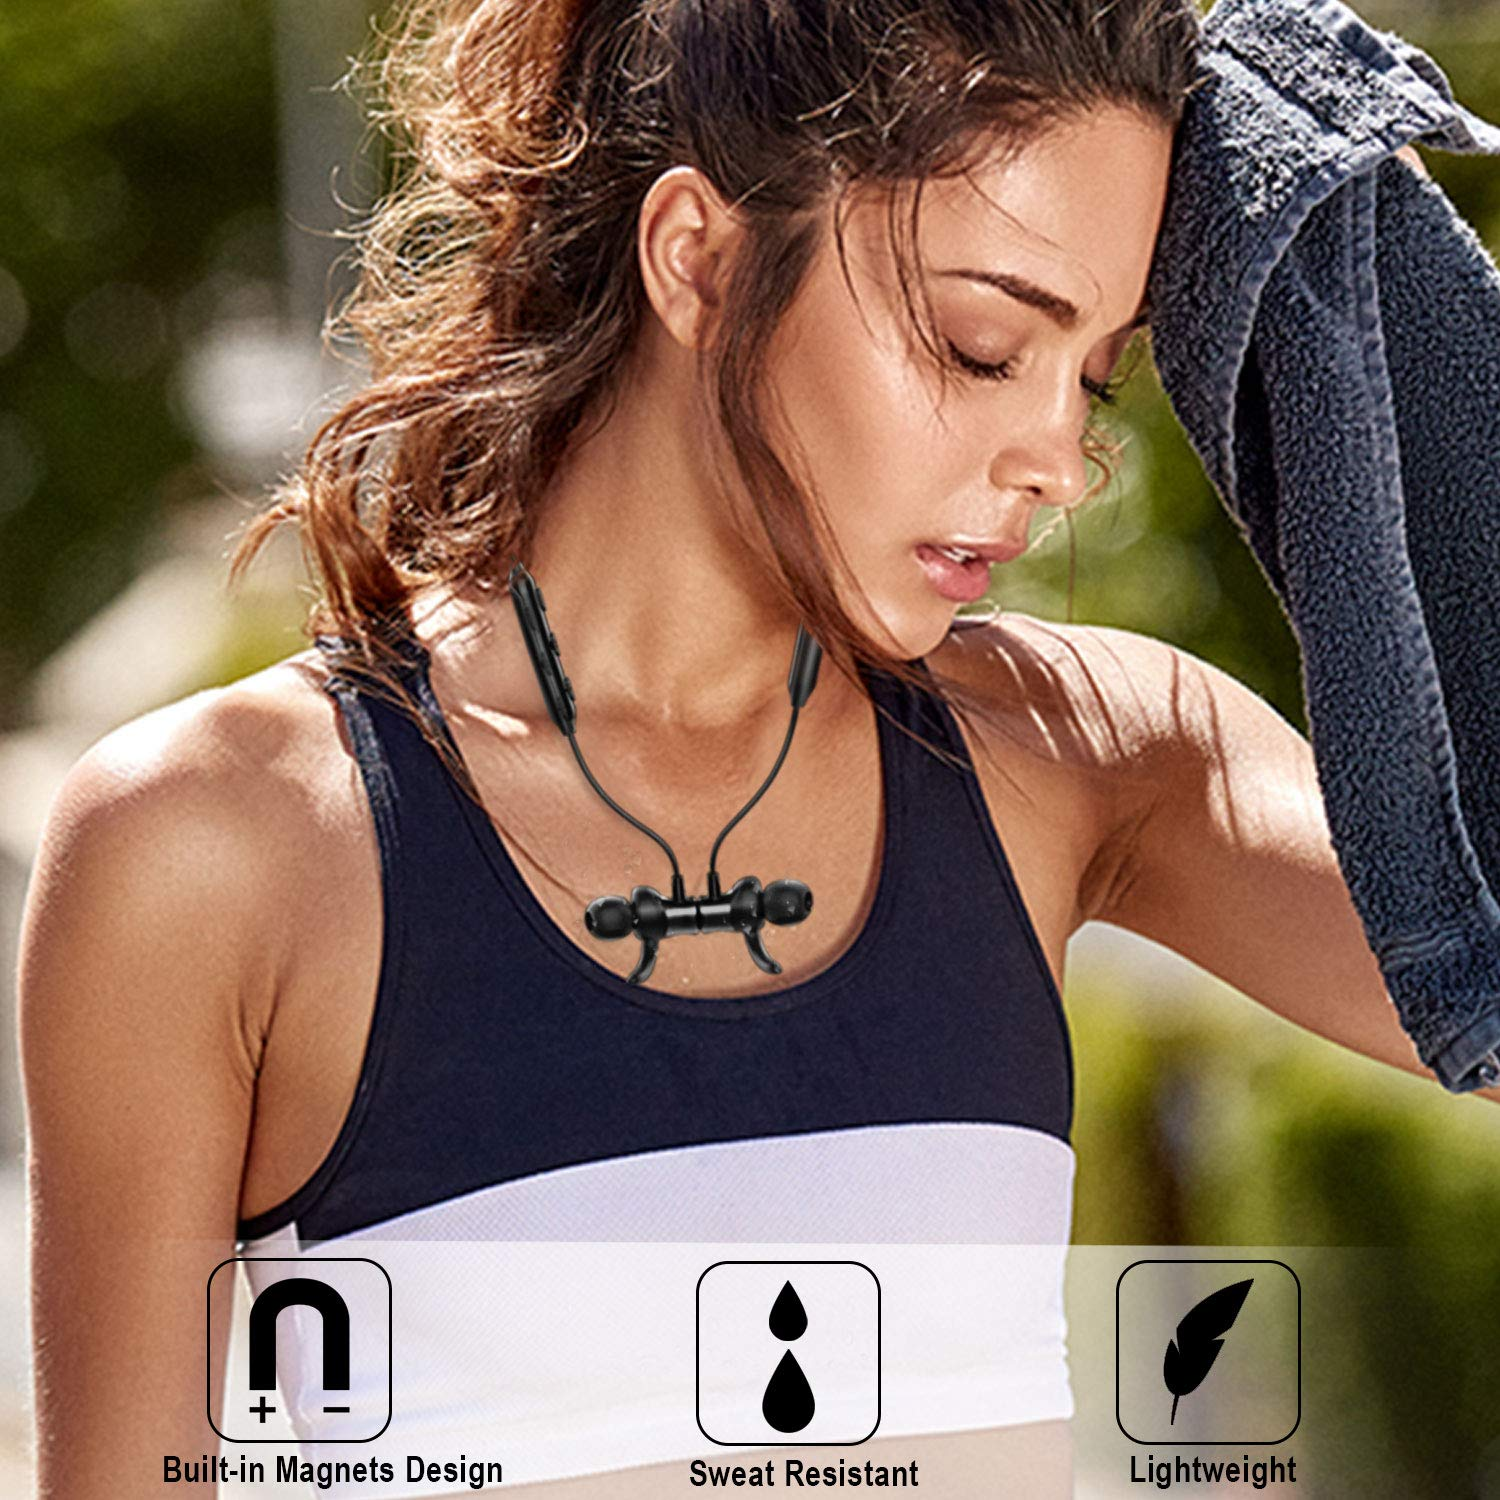 Bluetooth Headphones, Akface Wireless Earbuds Sweatproof Sport Earphones w/Mic Bluetooth 5.0 Fast Pairing HD Stereo Noise Canceling Magnetic in-Ear Headsets for Gym Running Workout Men Women Students by akface (Image #5)